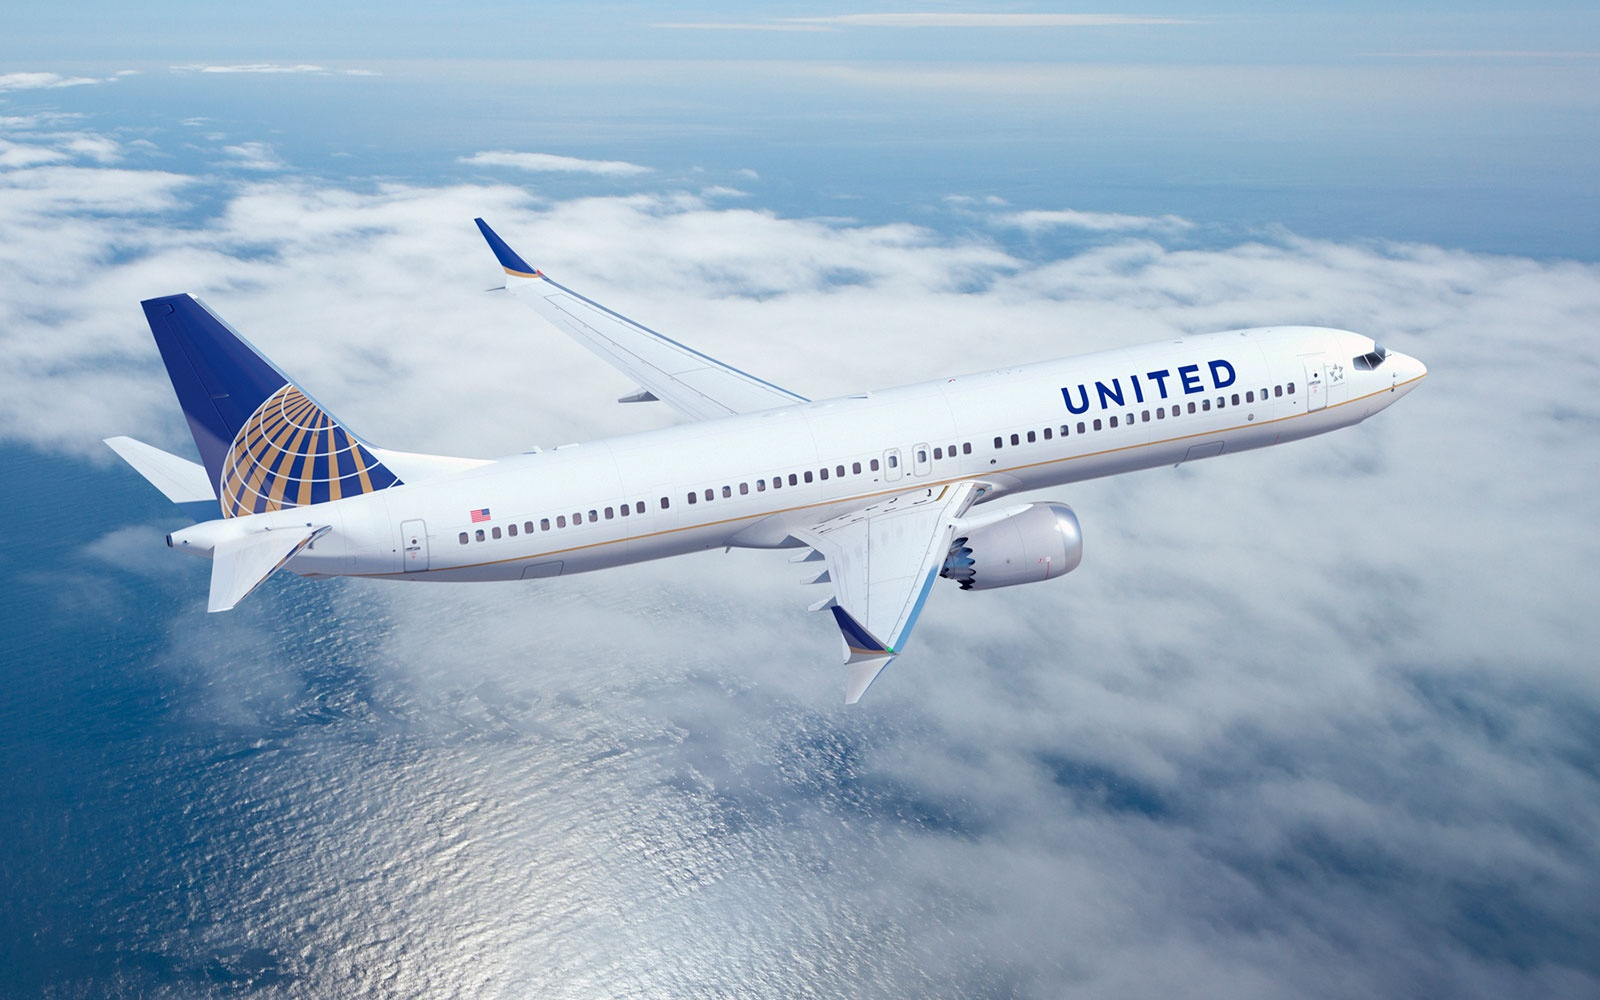 Ted was one of two airline divisional brands of United Airlines. It targeted vacation locations in the low cost airline market, in contrast to United's high end divisional